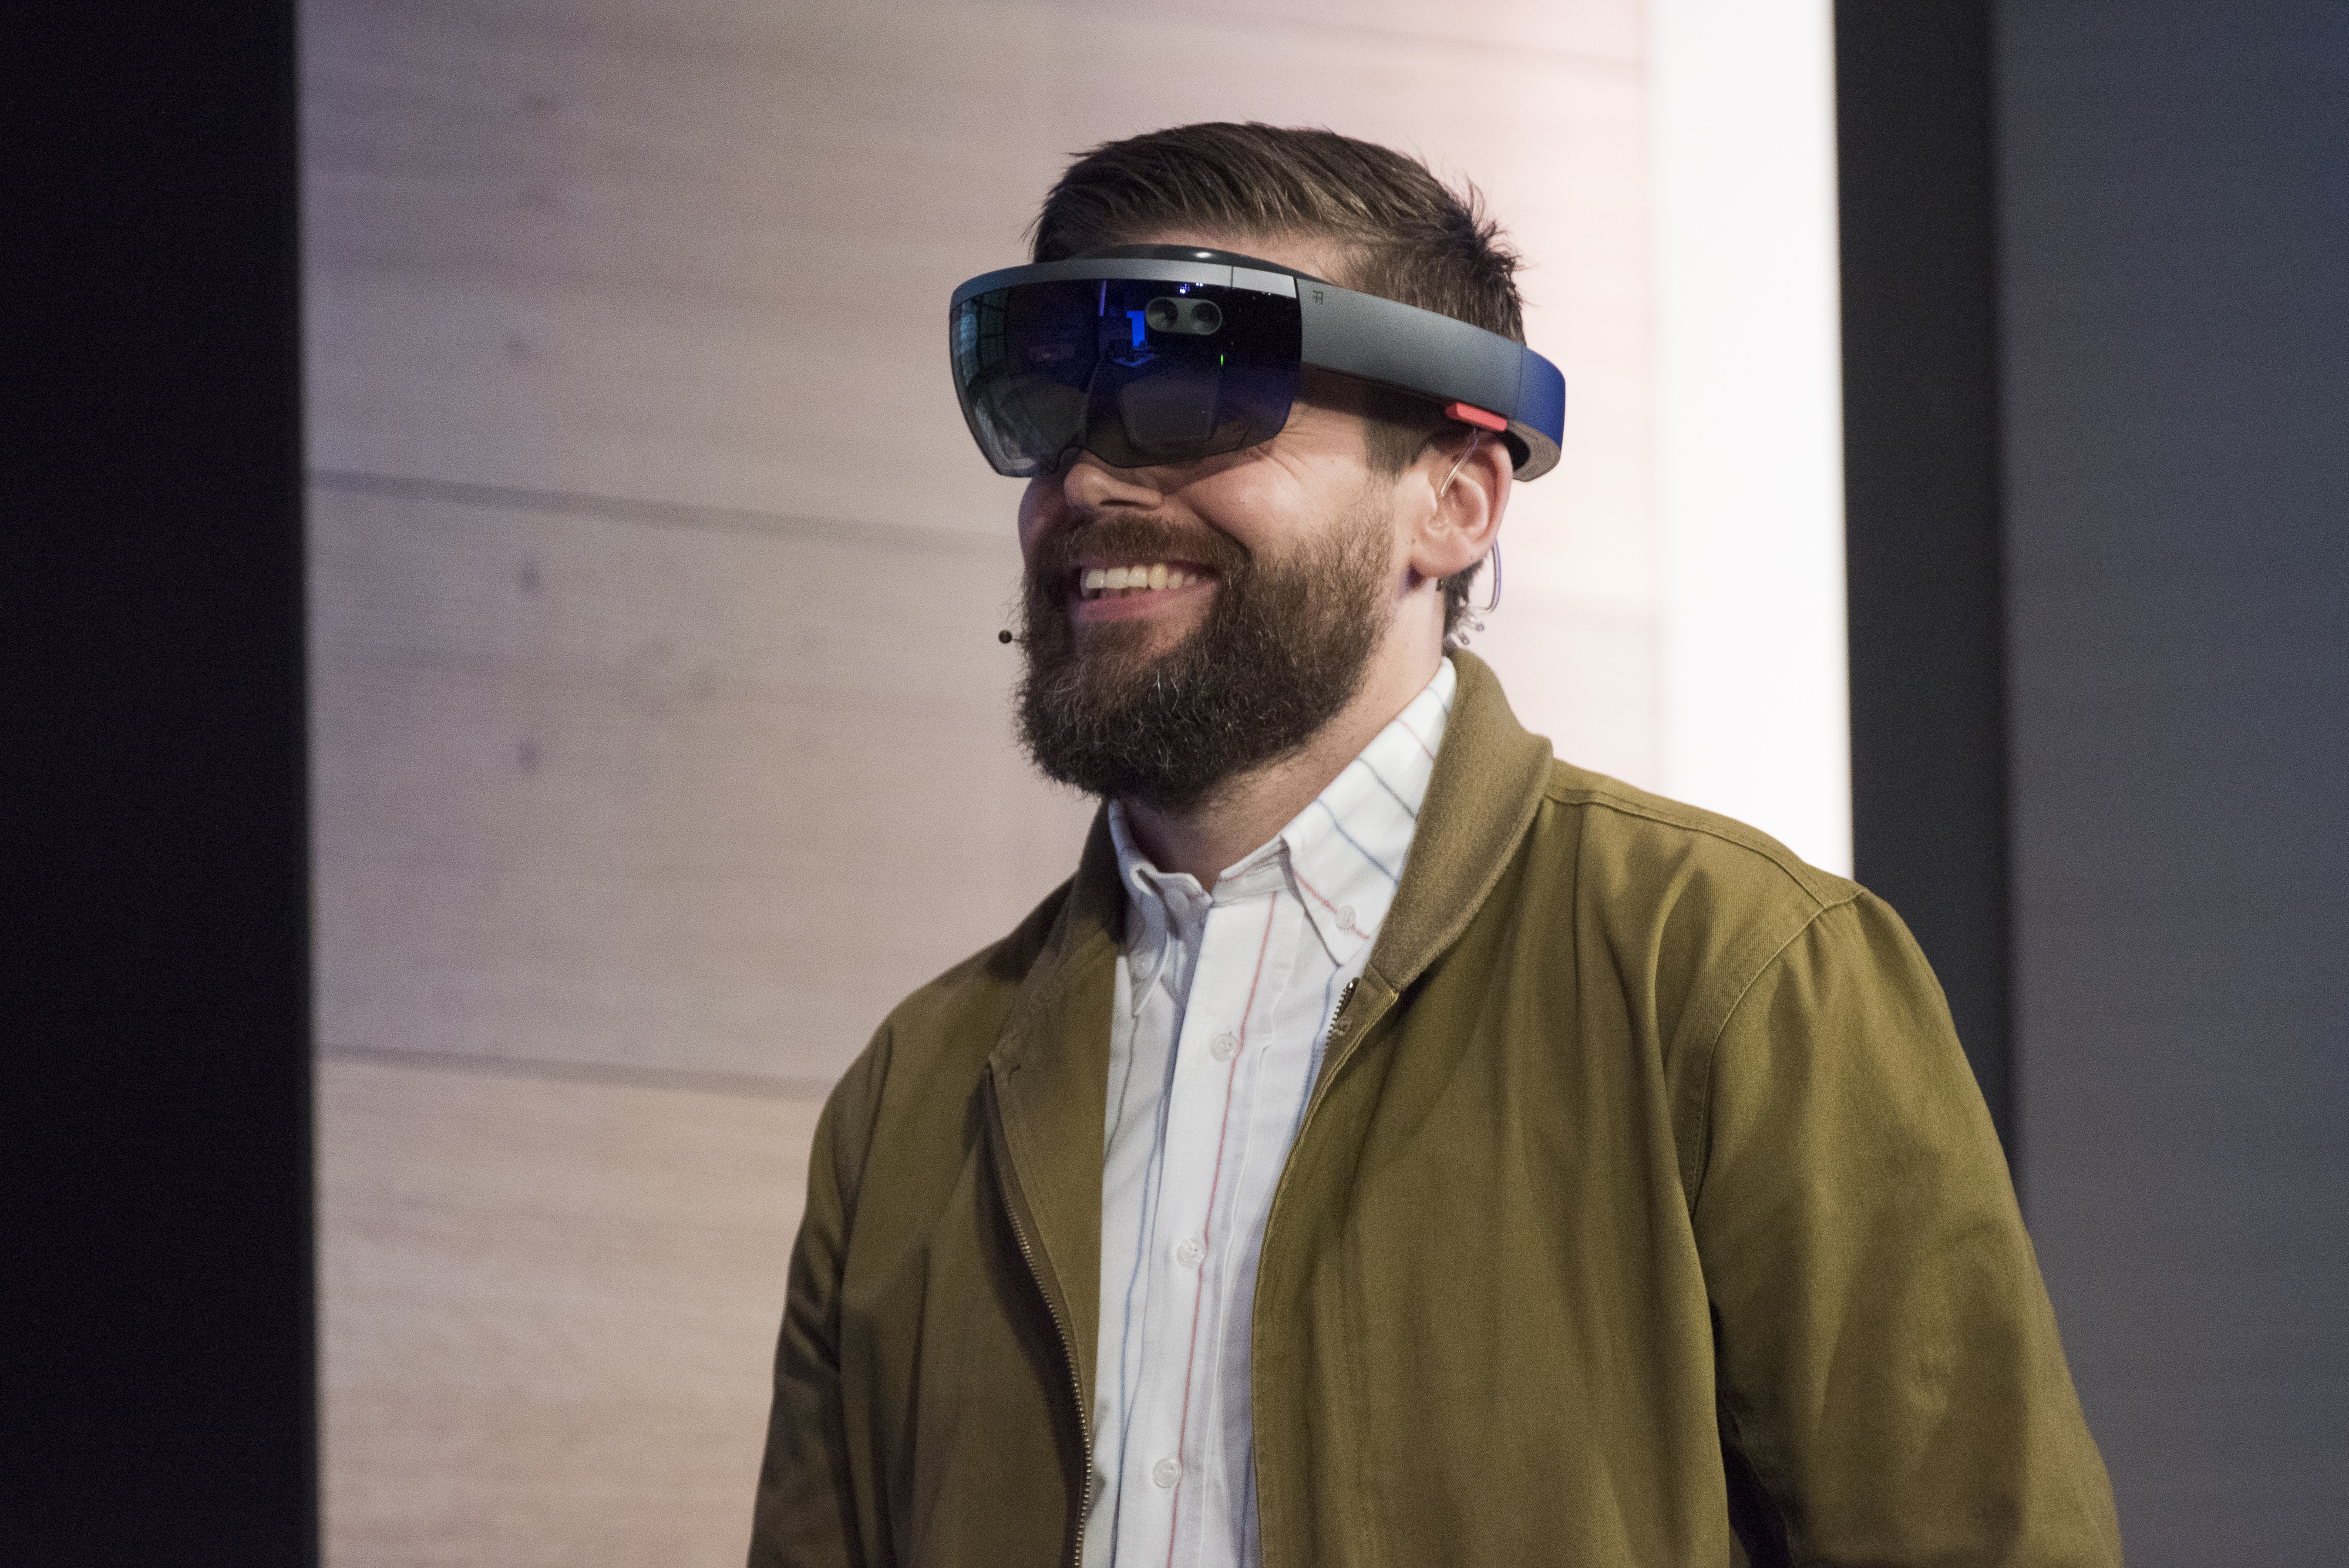 The Microsoft Corp. HoloLens augmented reality headset is demonstrated during a keynote session at the Microsoft Developers Build Conference in San Francisco, California, U.S., on Wednesday, April 29, 2015.